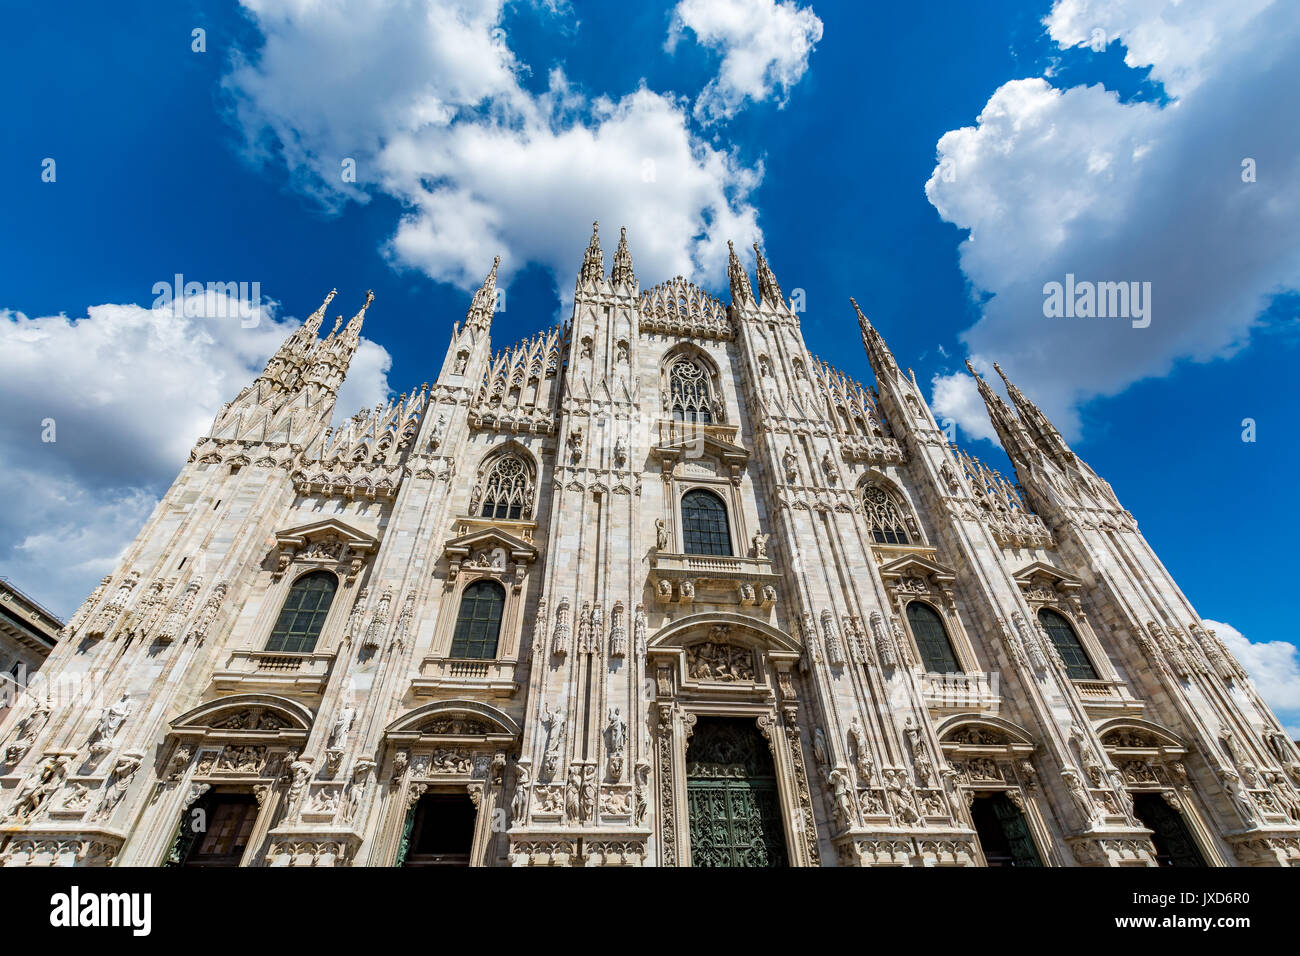 View of the Milan cathedral - Duomo di Milano on a beautiful day, Italy - Stock Image